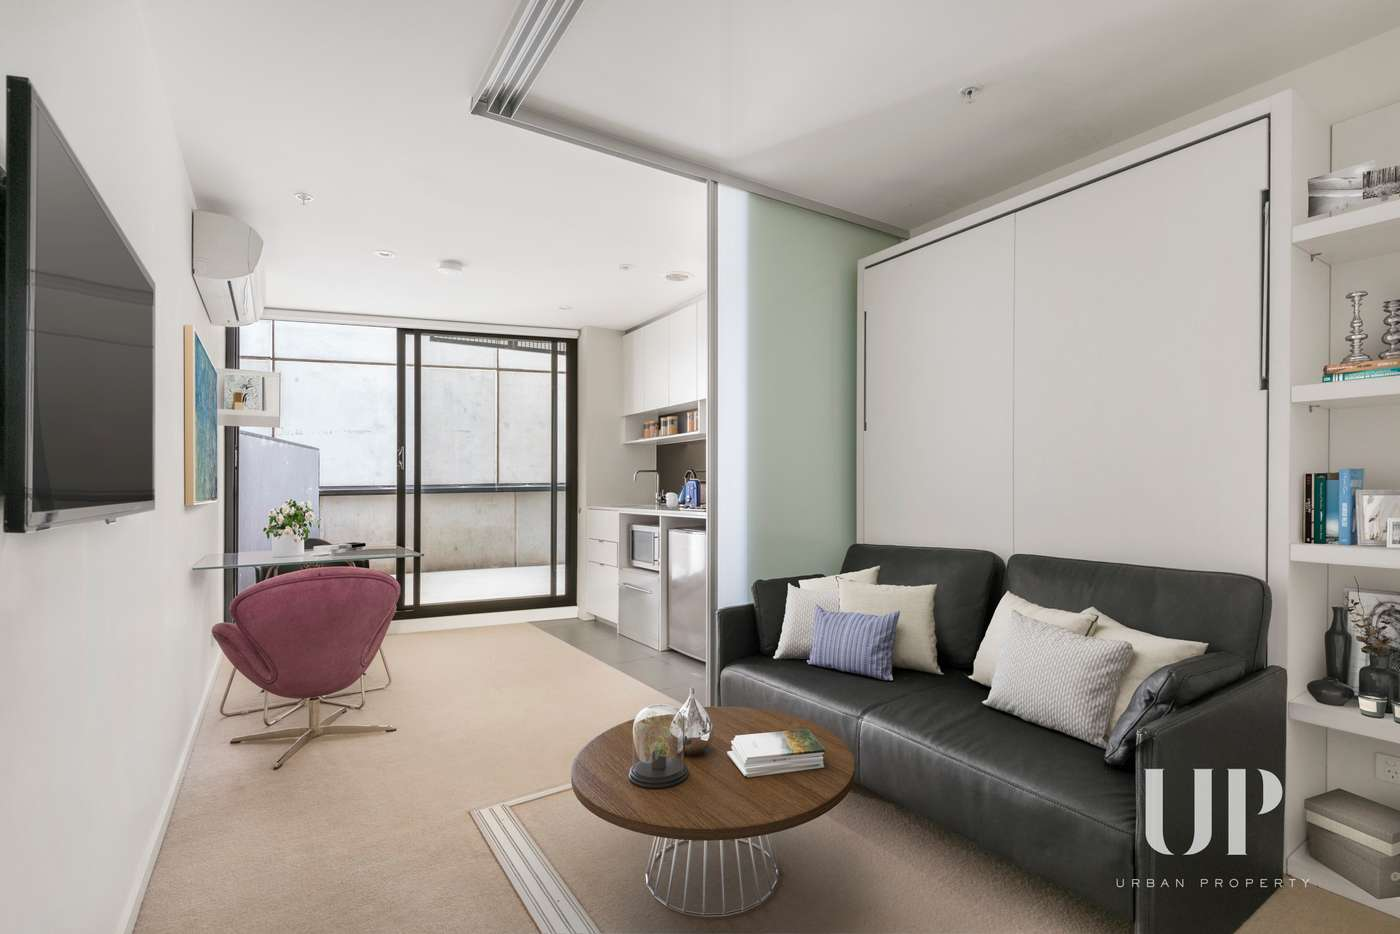 Main view of Homely apartment listing, 1302/243 Franklin Street, Melbourne VIC 3000